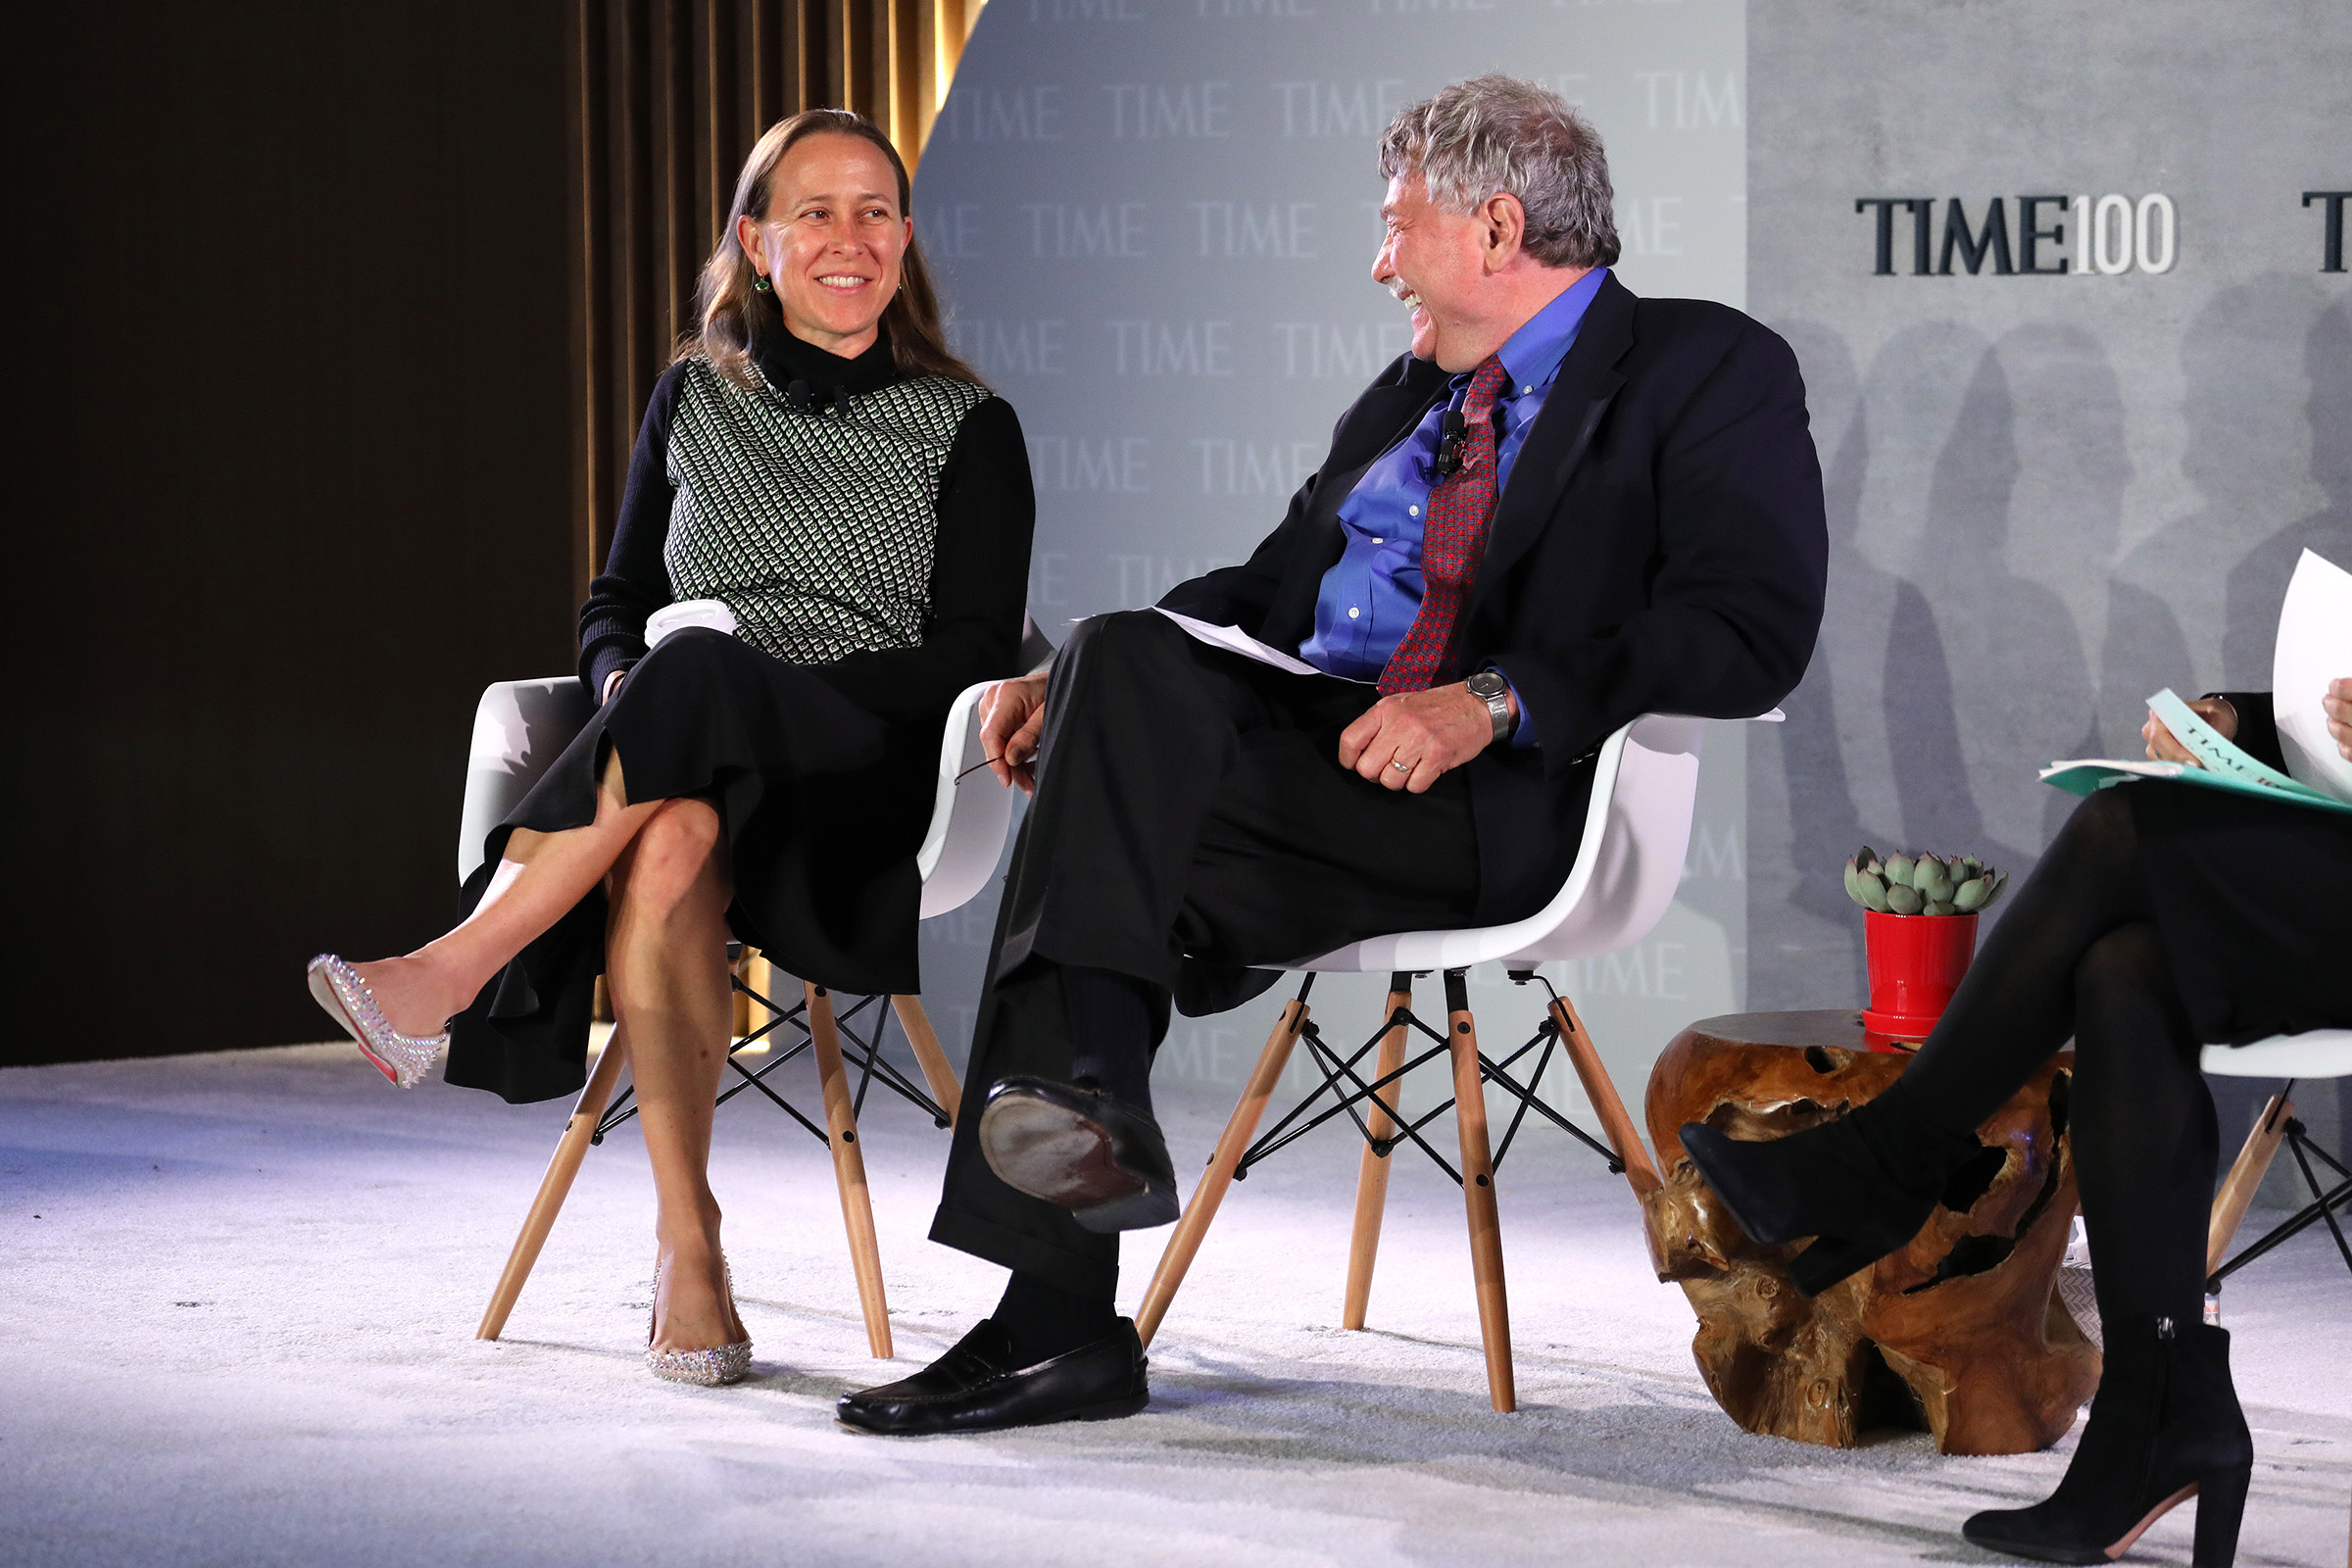 Co-Founder & CEO of 23andMe, Anne Wojcicki (L) and President & Founding Director of the Broad Institute at MIT and Harvard Professor, Eric Lander, speak onstage during the TIME 100 Health Summit at Pier 17 in New York City on Oct. 17, 2019.